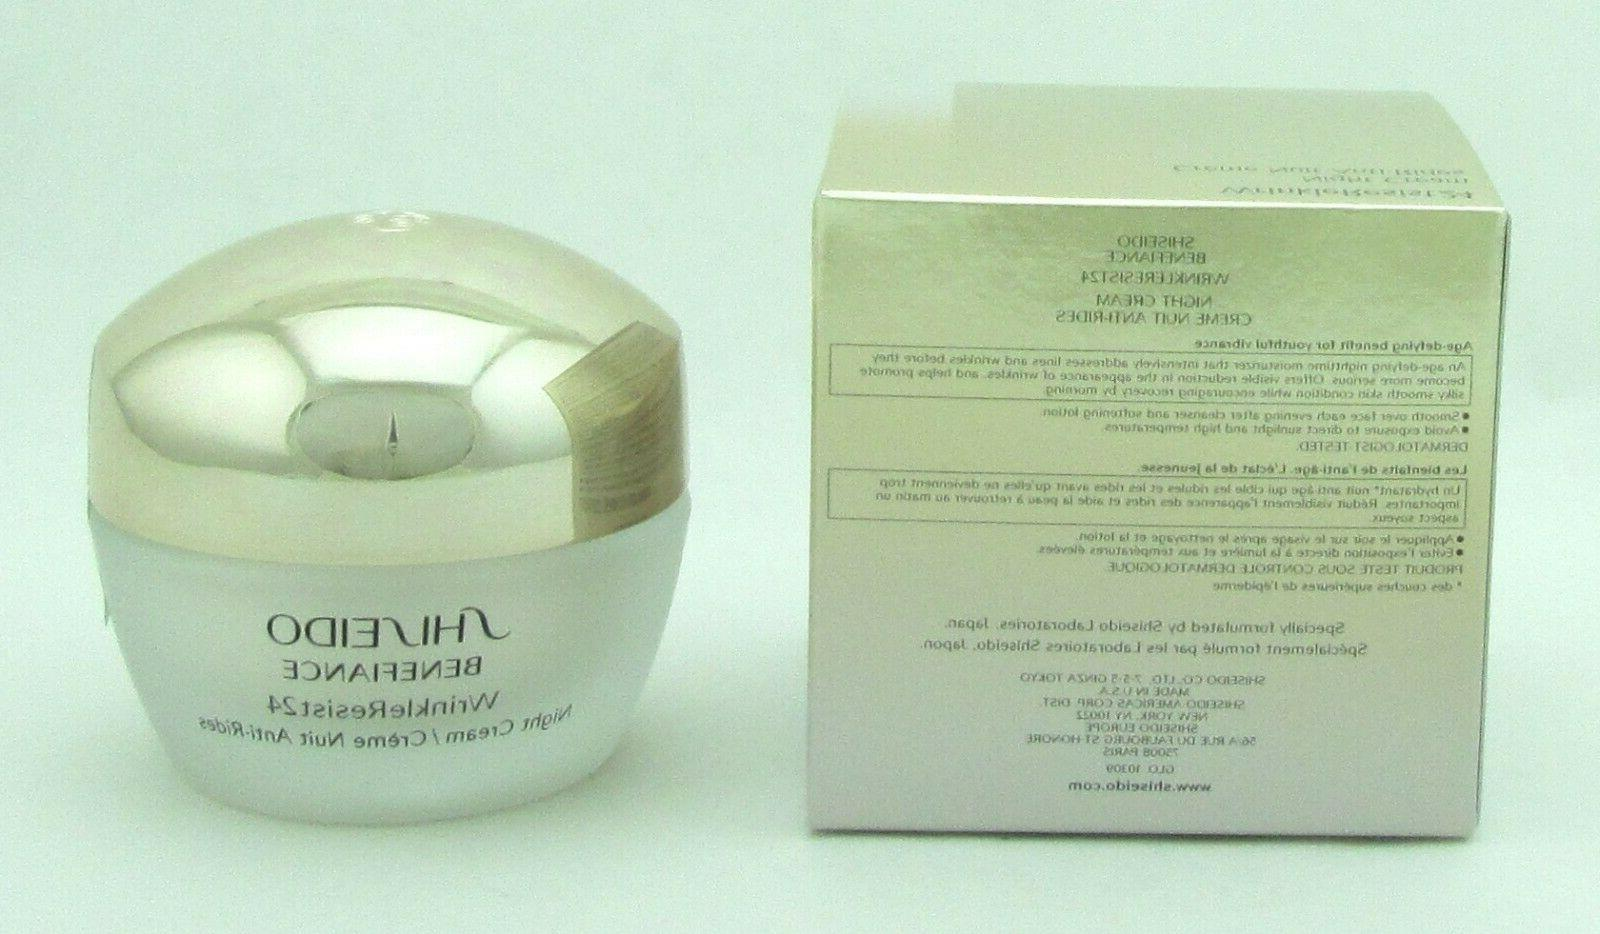 Shiseido Benefiance Cream 1.7 in